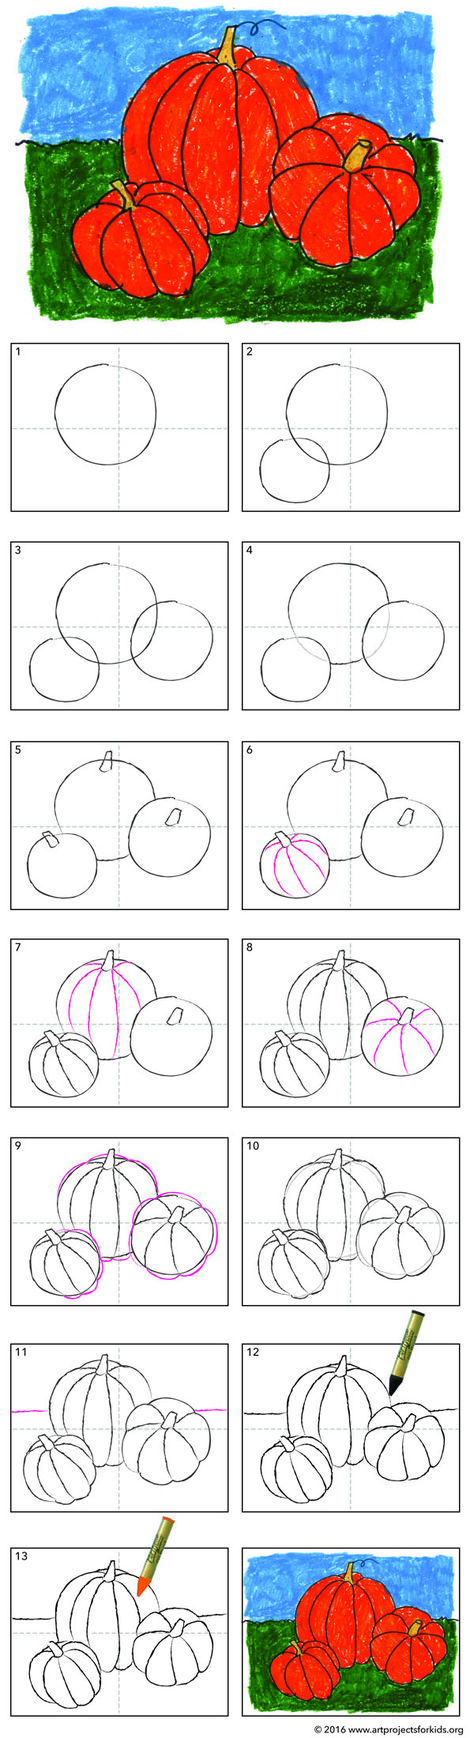 How to Draw a Pumpkin. Great for 3rd graders on up. PDF tutorial available. #pumpkin #howtodraw #directdraw